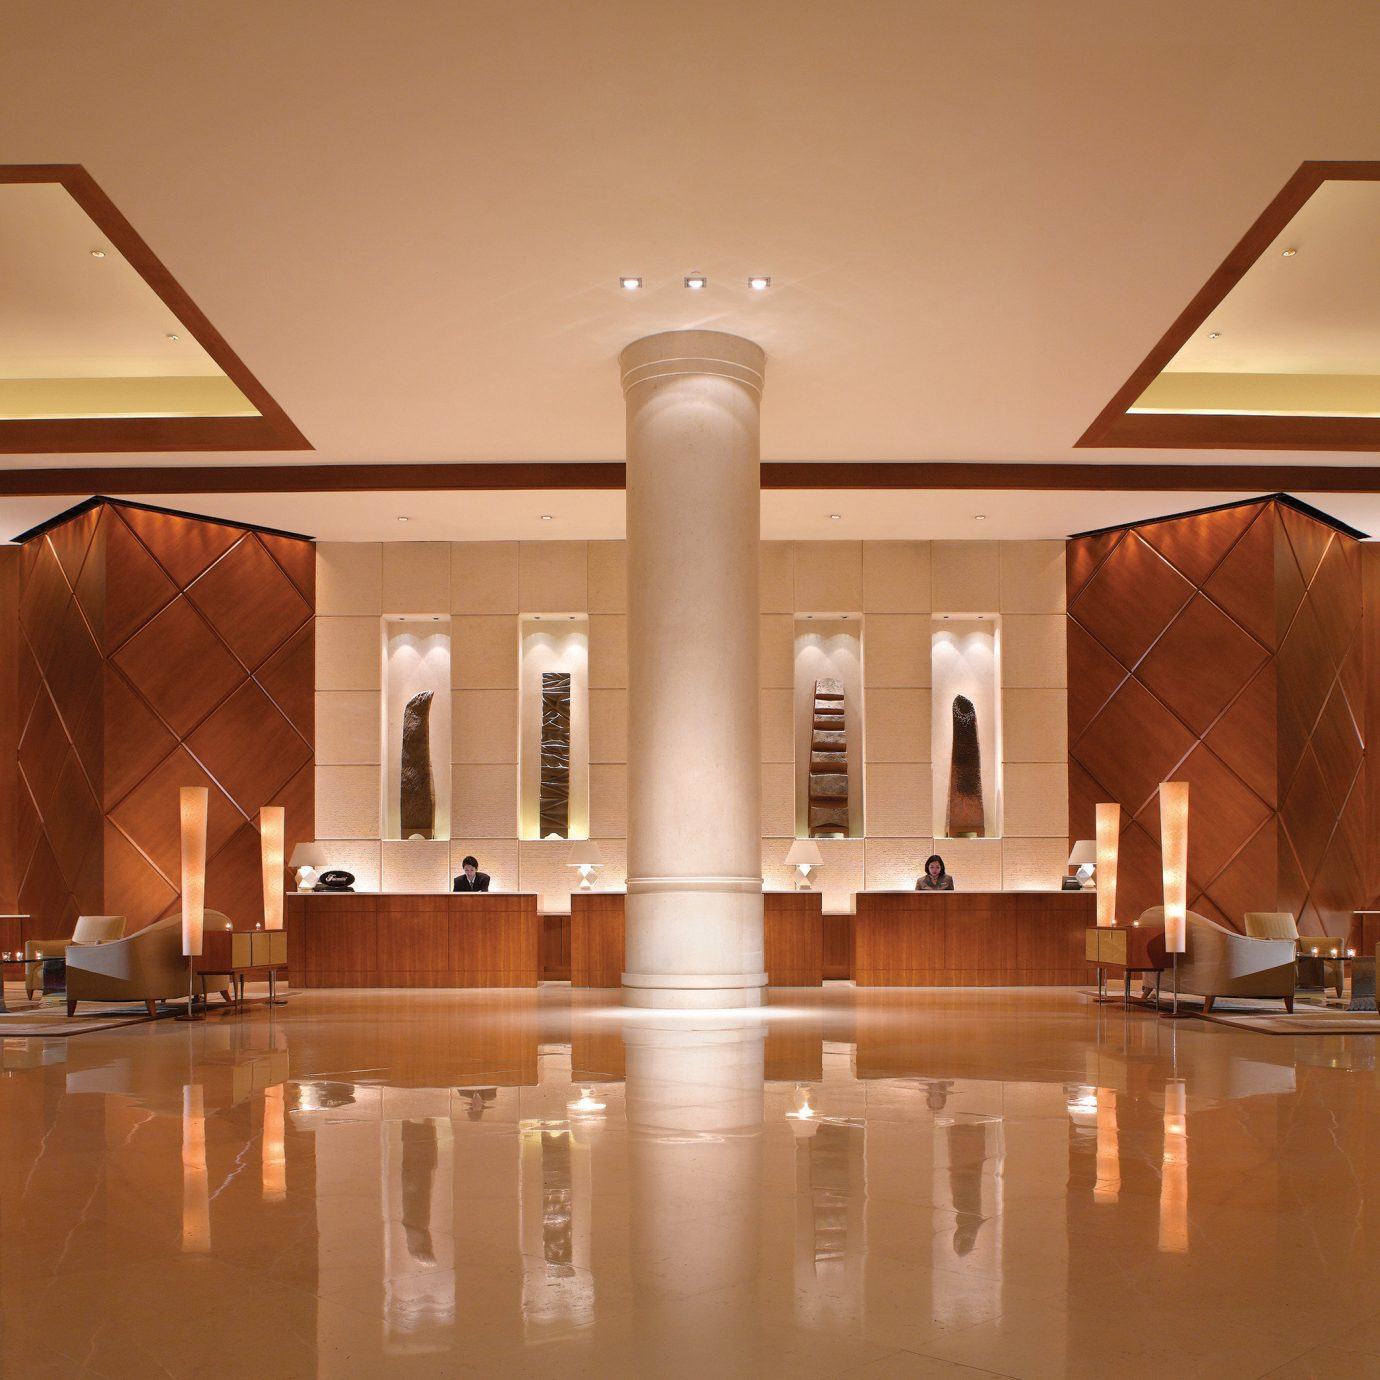 Lobby Lounge Luxury building Architecture lighting tourist attraction ballroom hall counter art gallery